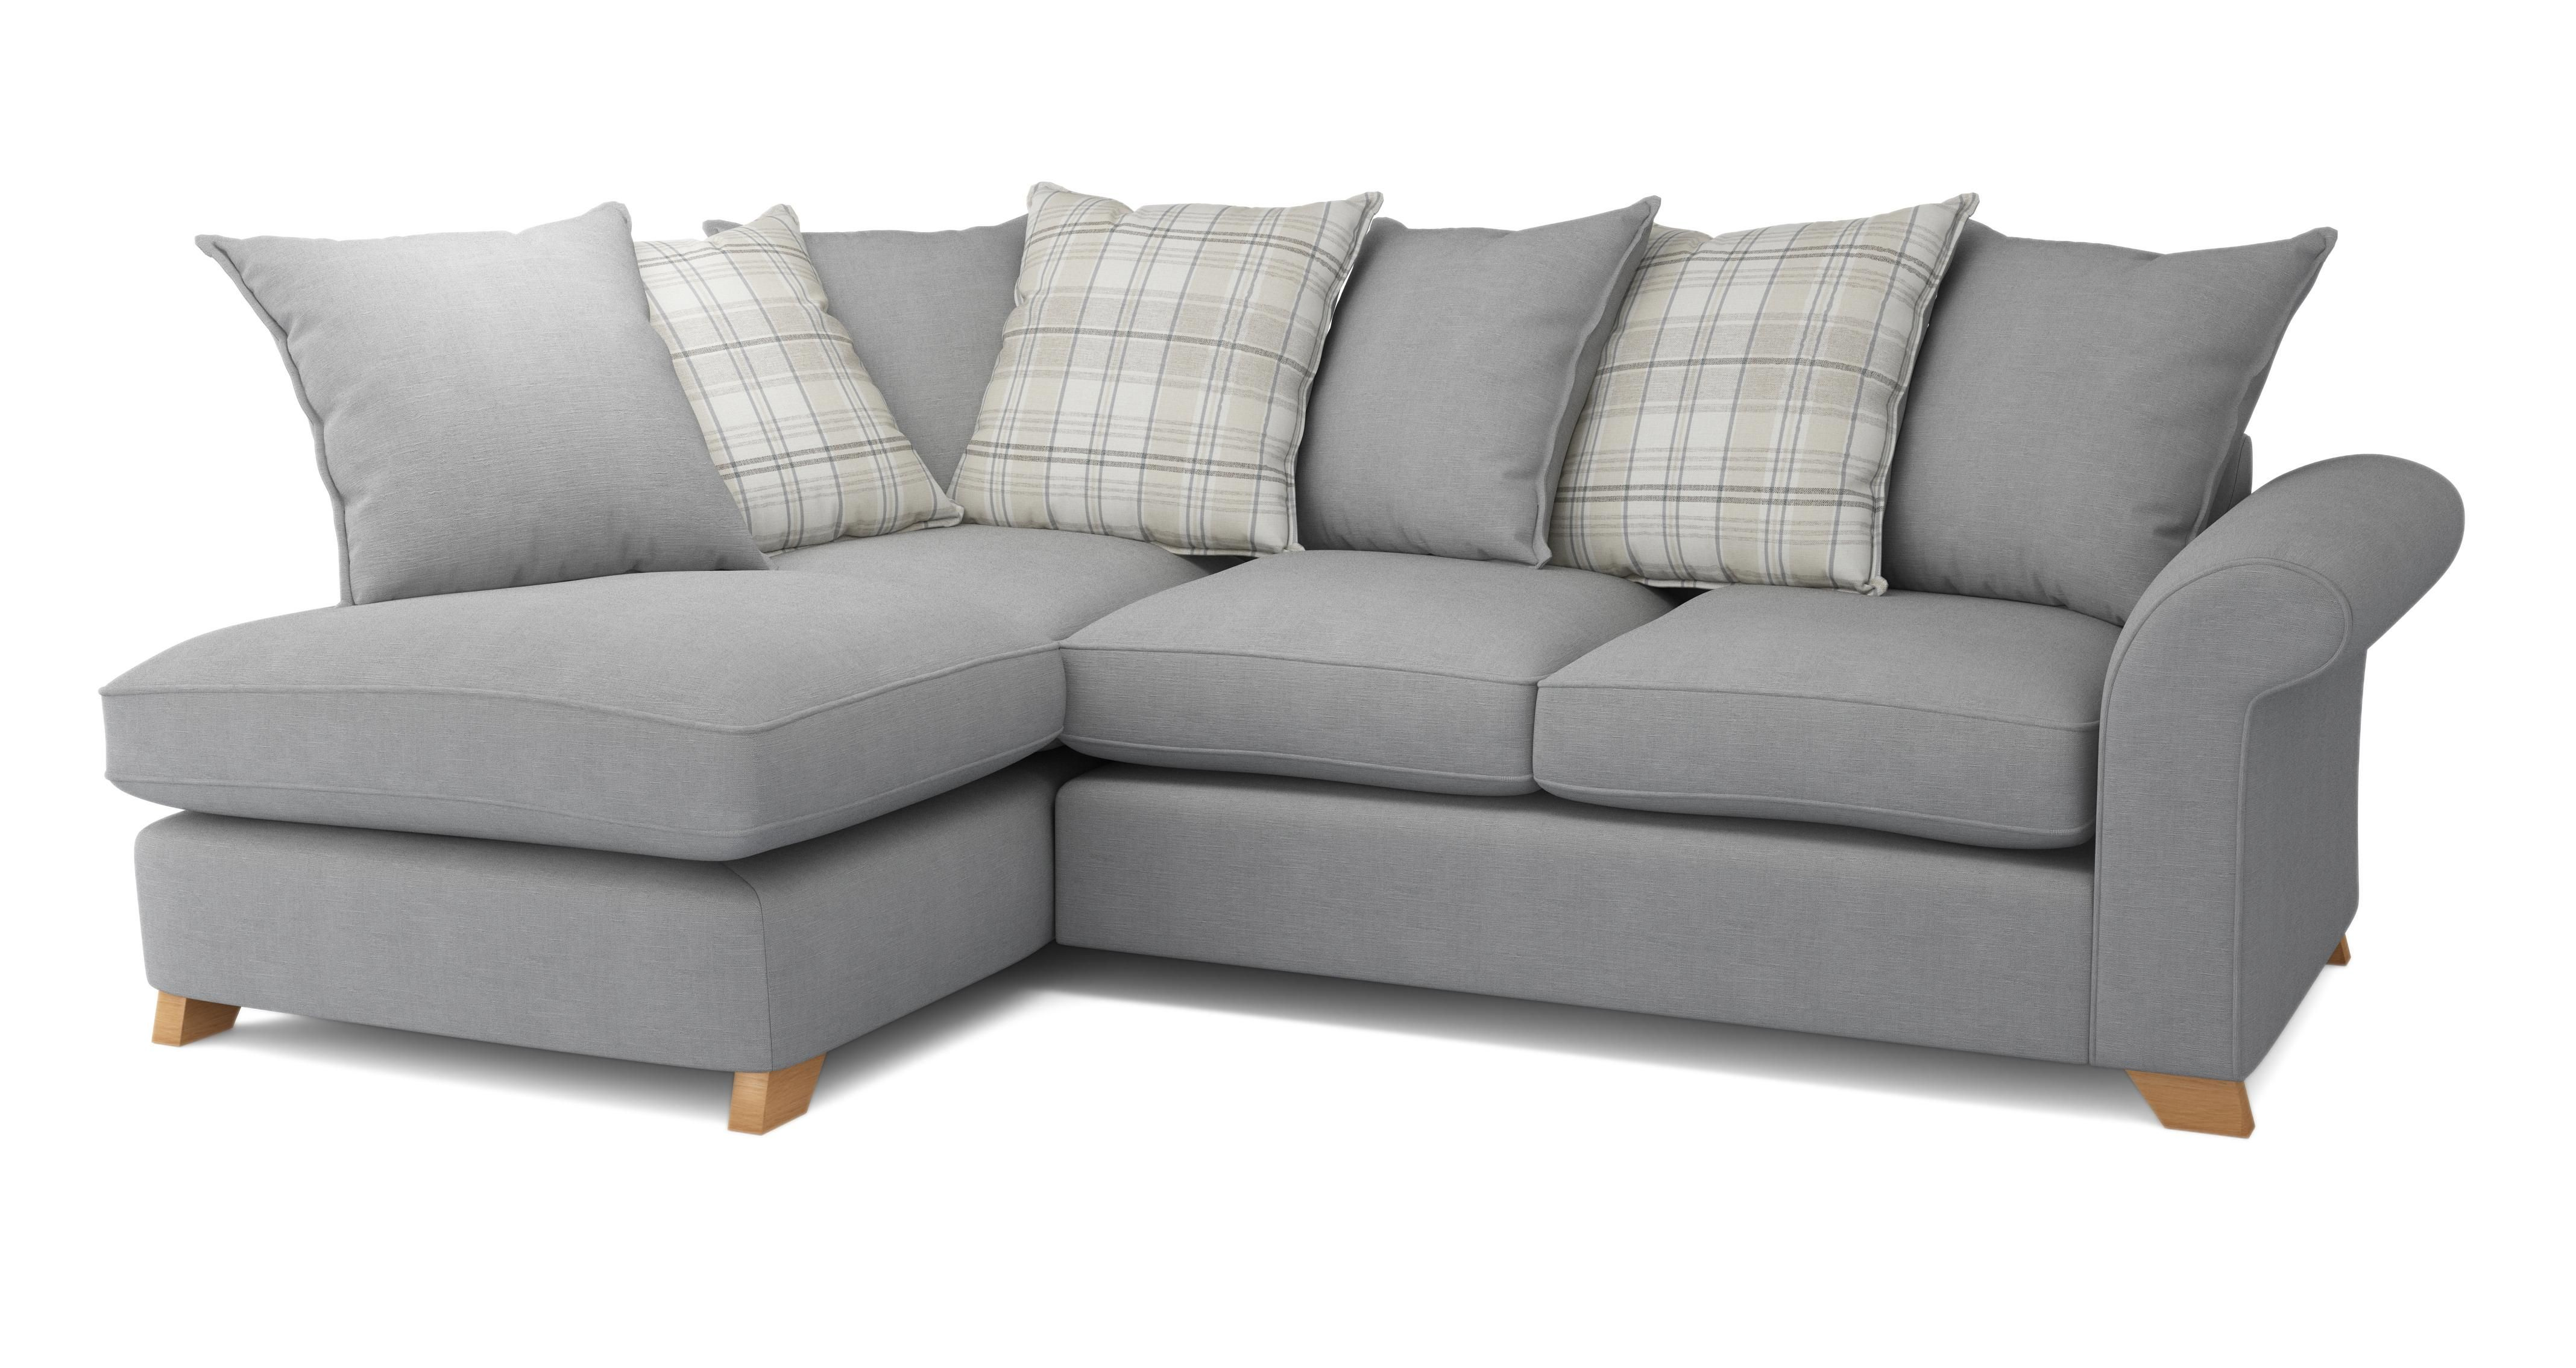 Nice Sofa Back Pillows Trend 29 Contemporary Inspiration With